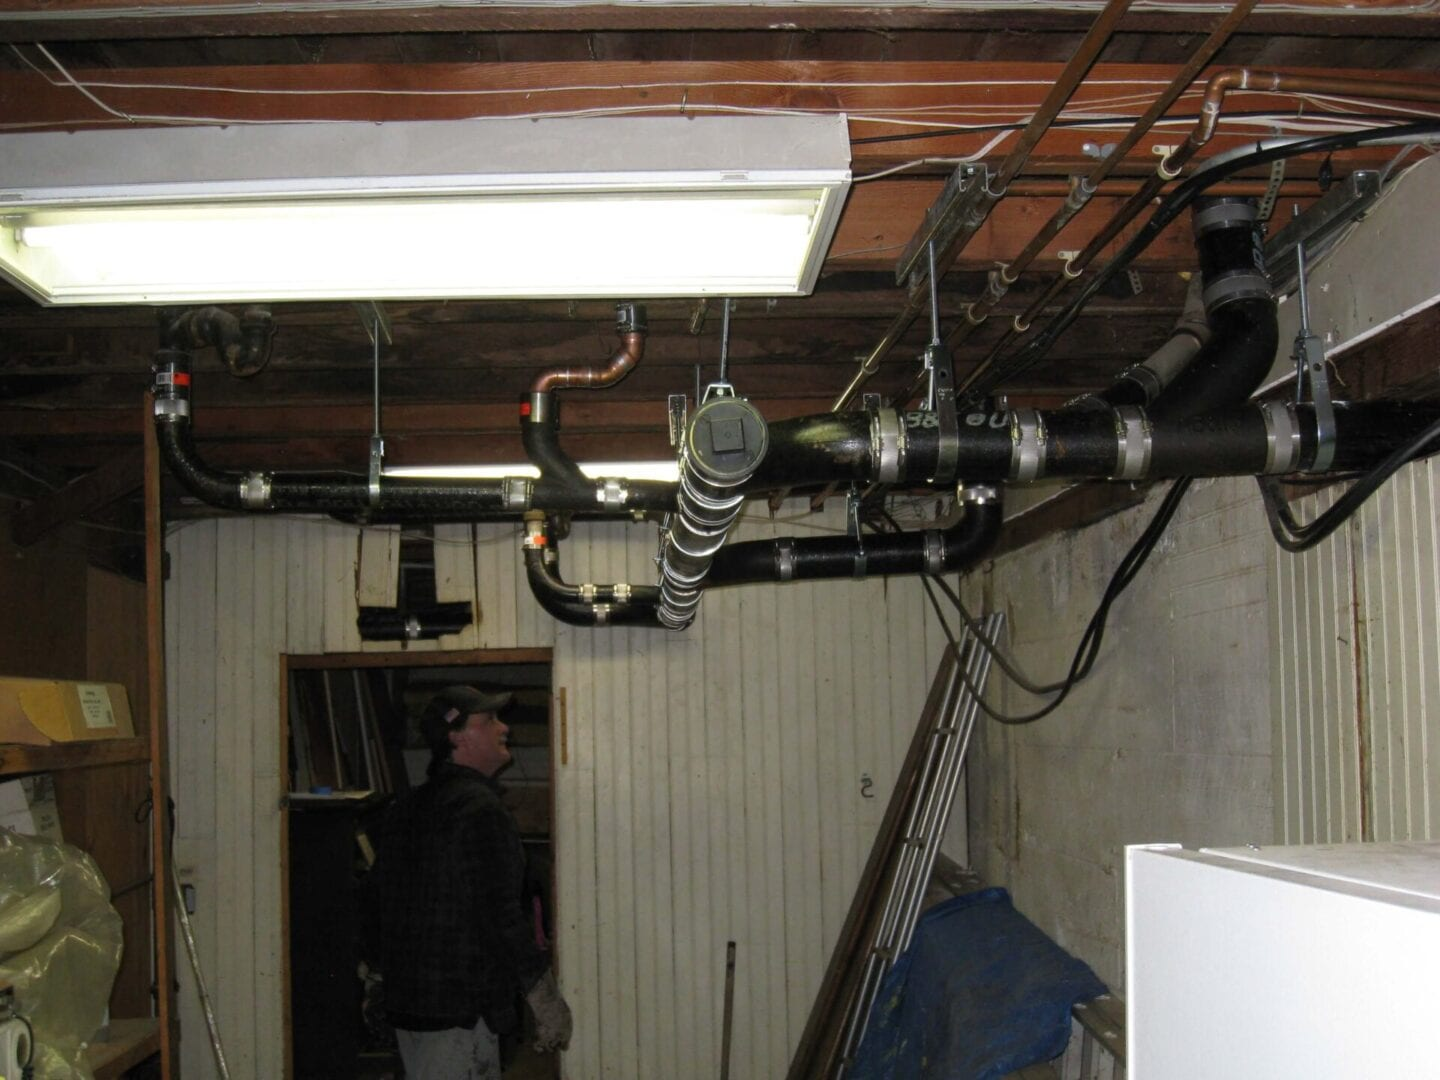 A plumbing contractor checking an installation in San Jose, CA